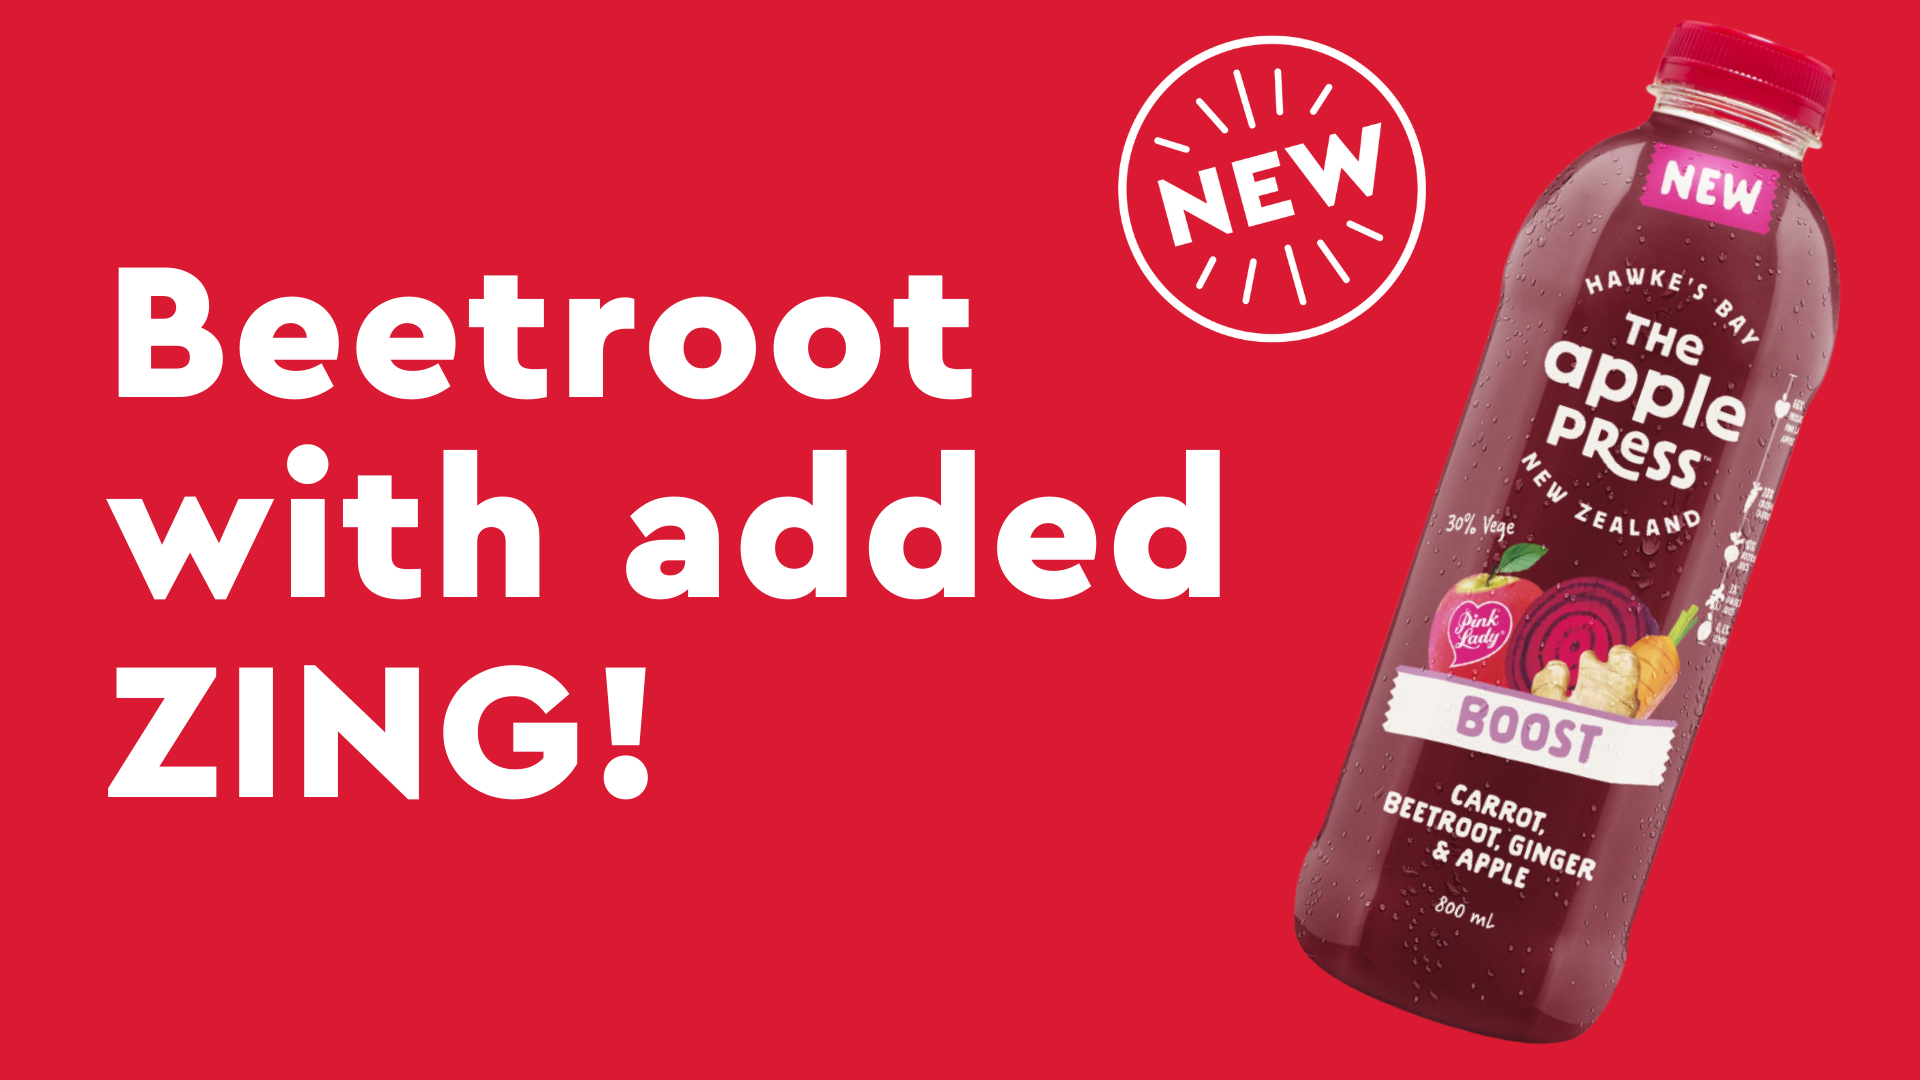 BOOST Beetroot and Pink Lady